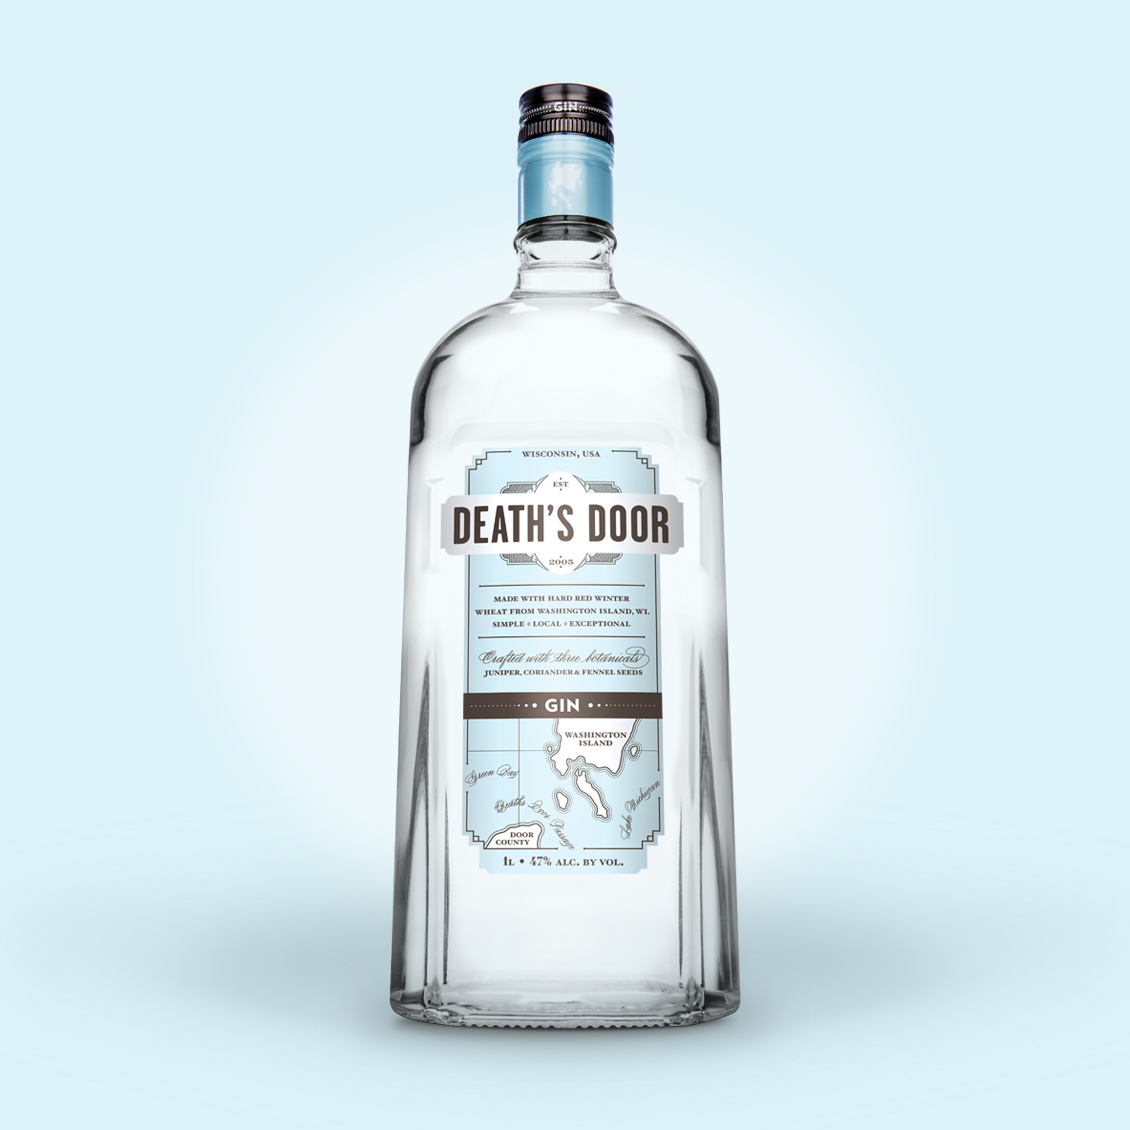 DEATH'S DOOR | Bottle Launch